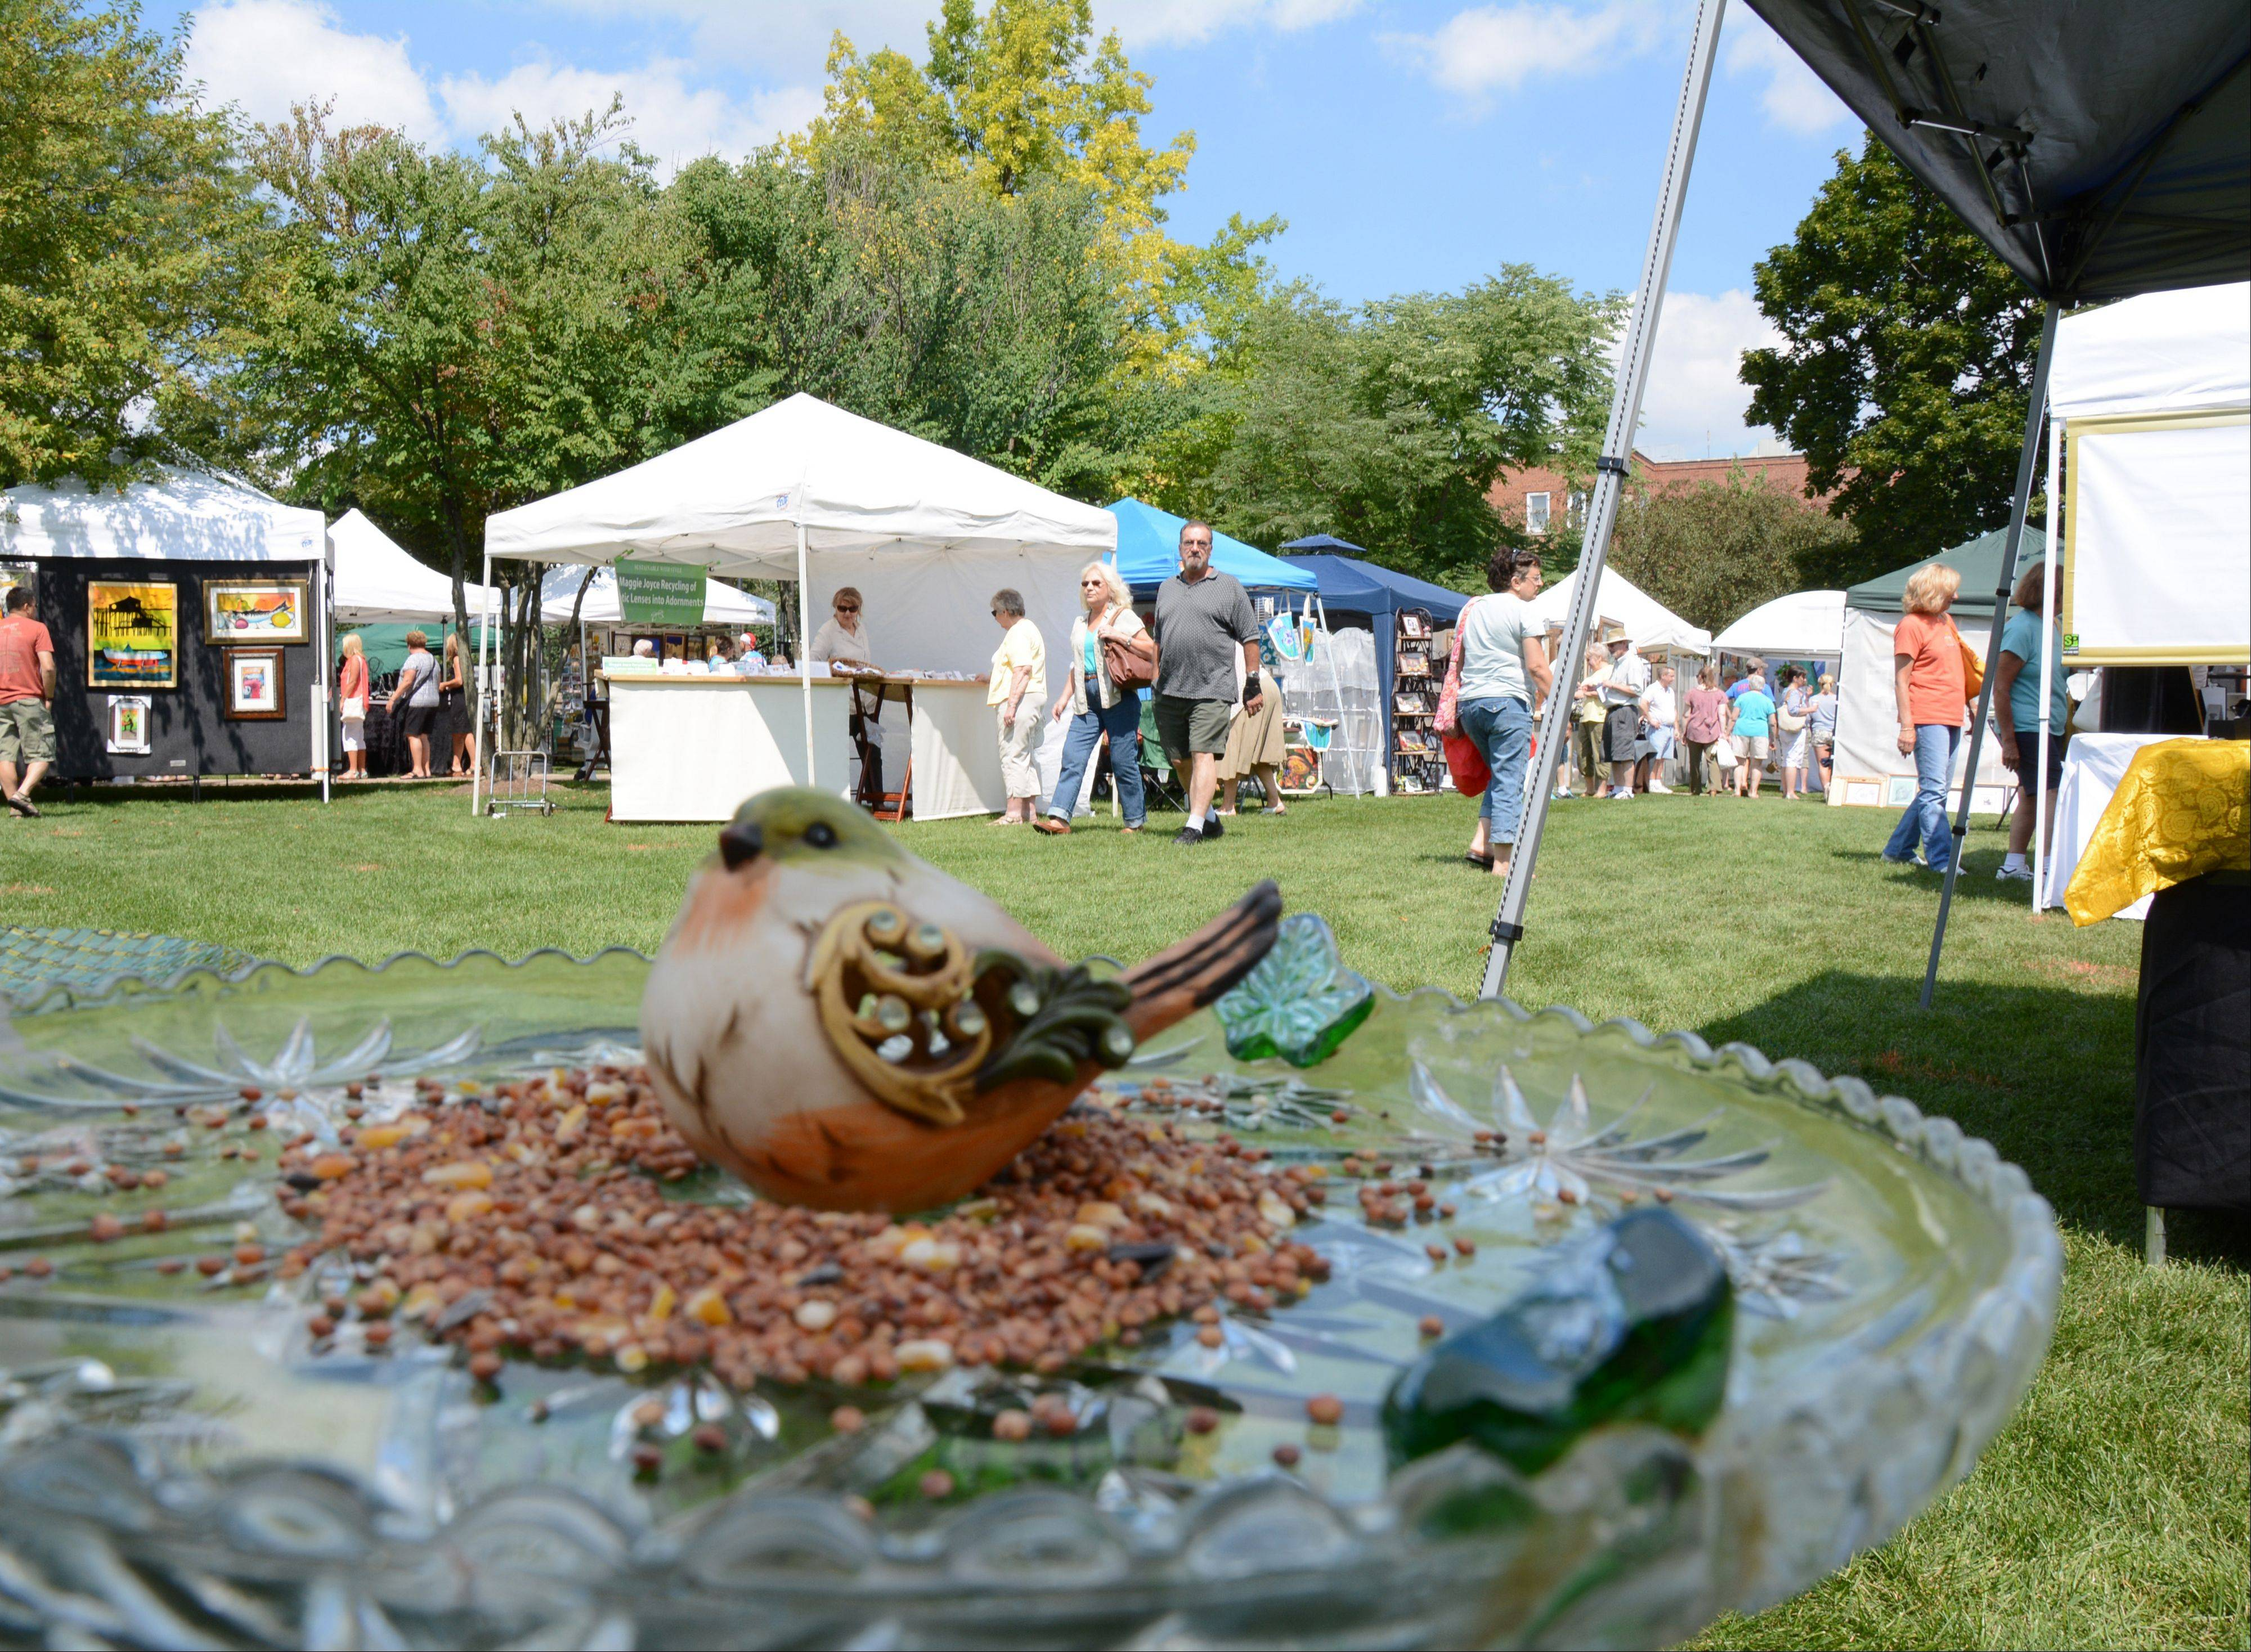 A birdbath made from recycled and repurposed glass was among the items on display at artist Pamela Pence's booth during the annual A Walk in the Park art fair Arlington Heights Sunday.